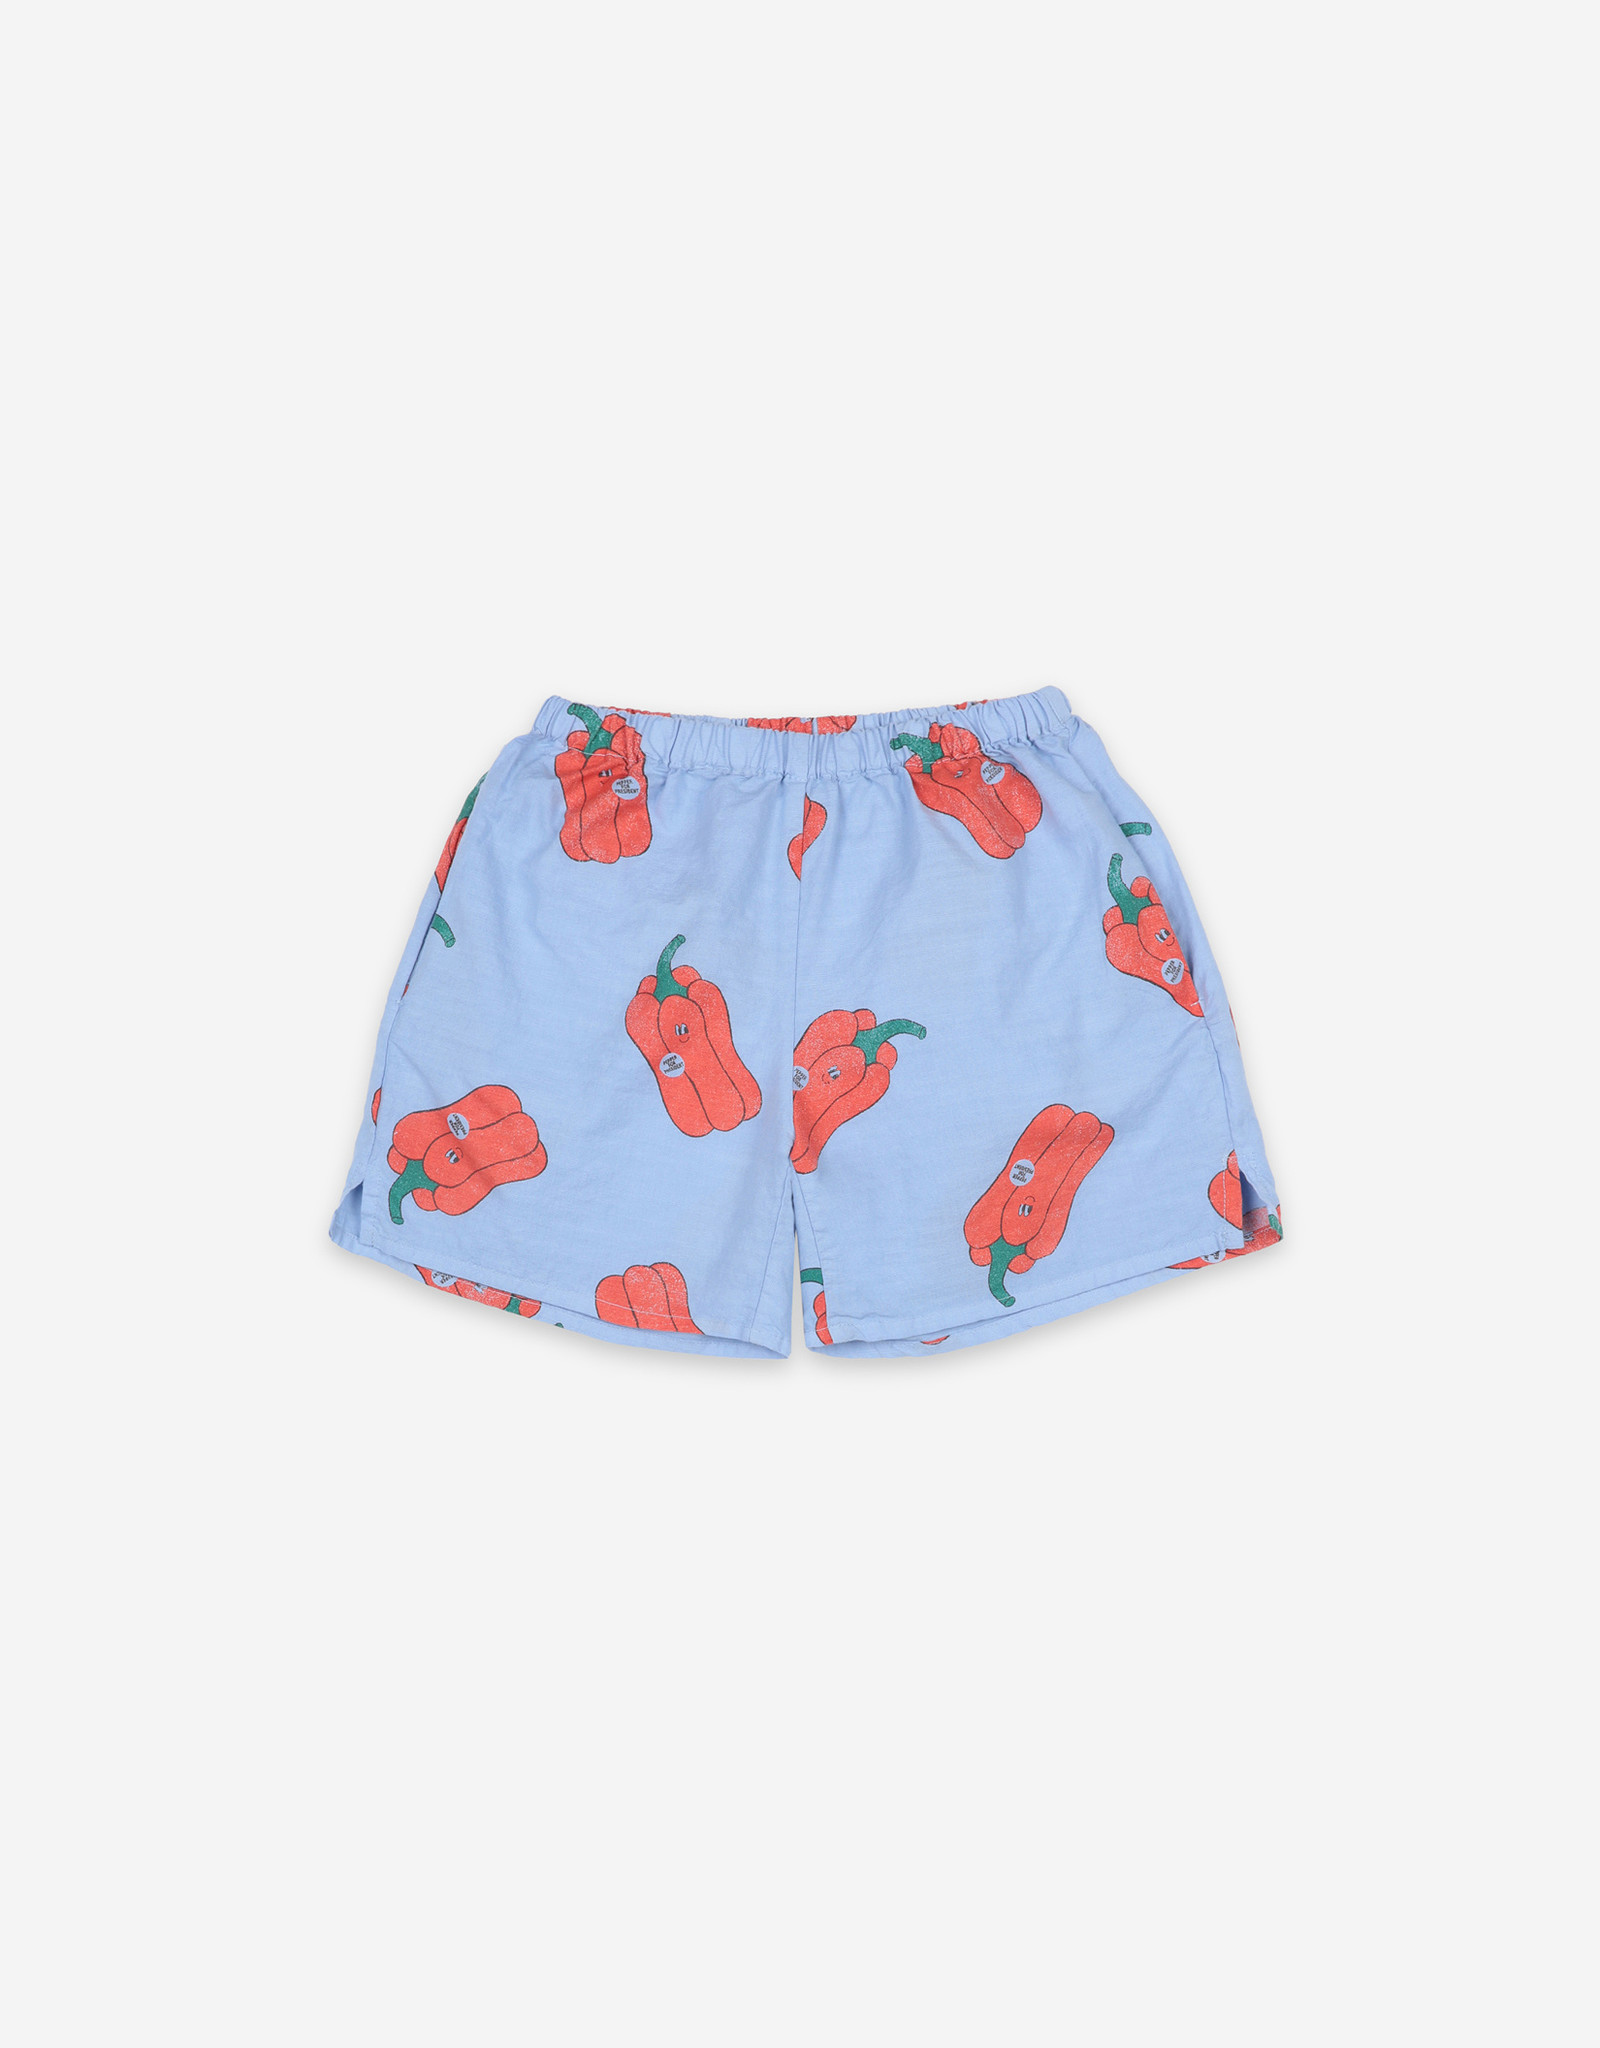 Bobo Choses Vote For Pepper Woven Shorts